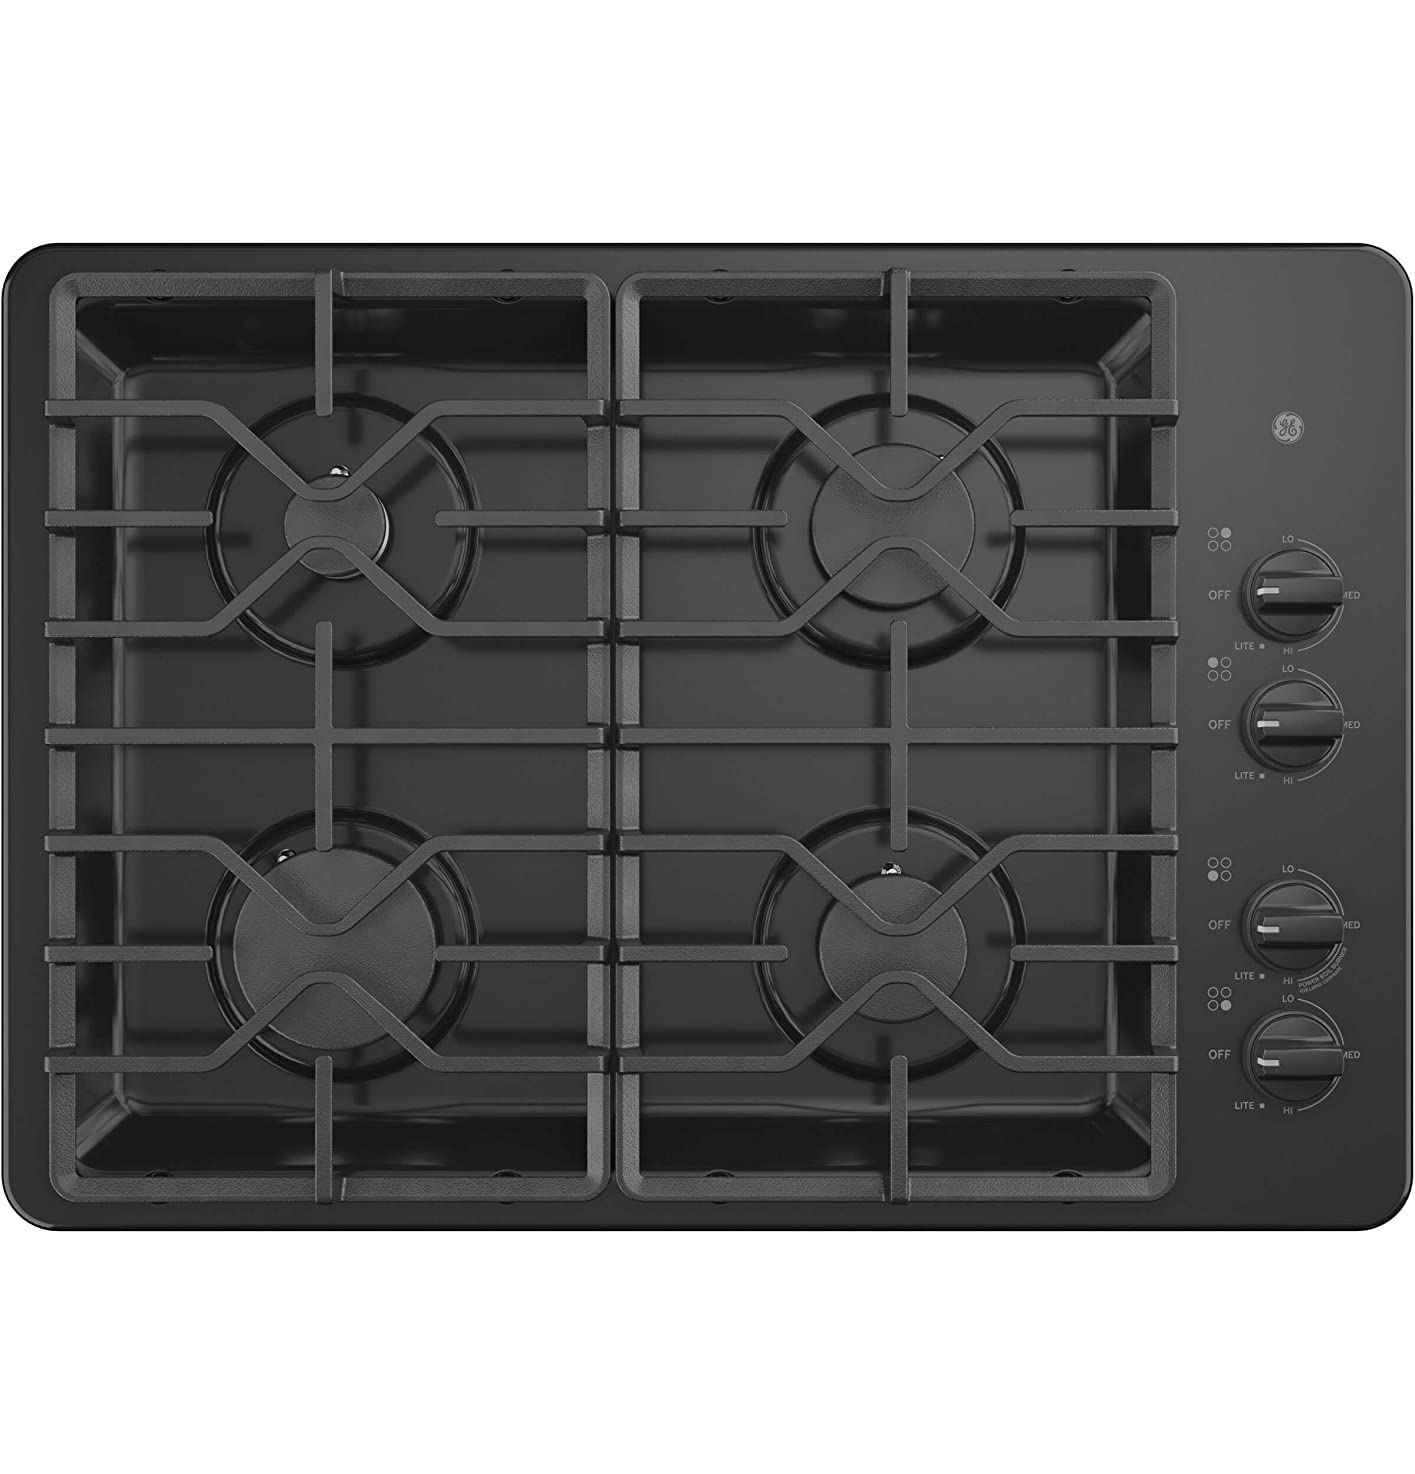 GE JGP3030DLBB 30 Inch Gas Cooktop with MAX System, Power Broil, Simmer, Continuous Grates, Sealed Burners and ADA Compliant tkaatkixowasf8